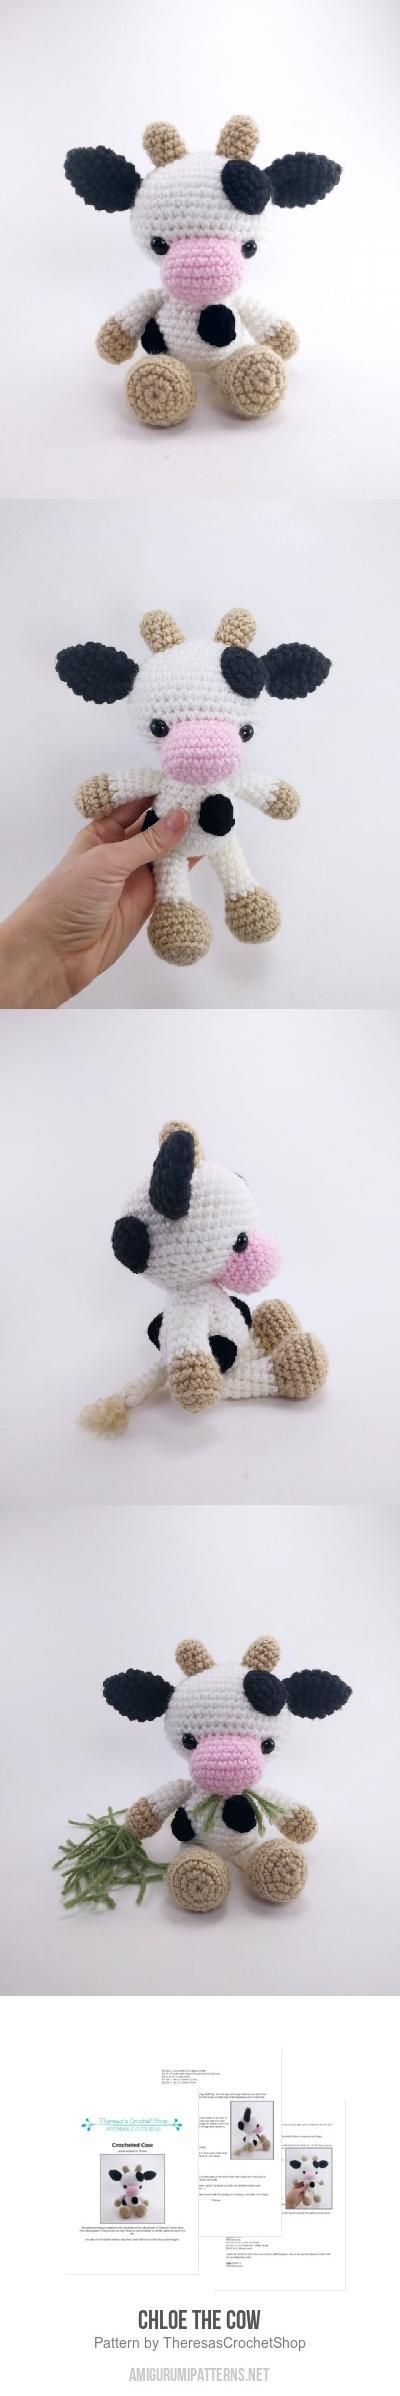 Chloe the Cow amigurumi pattern